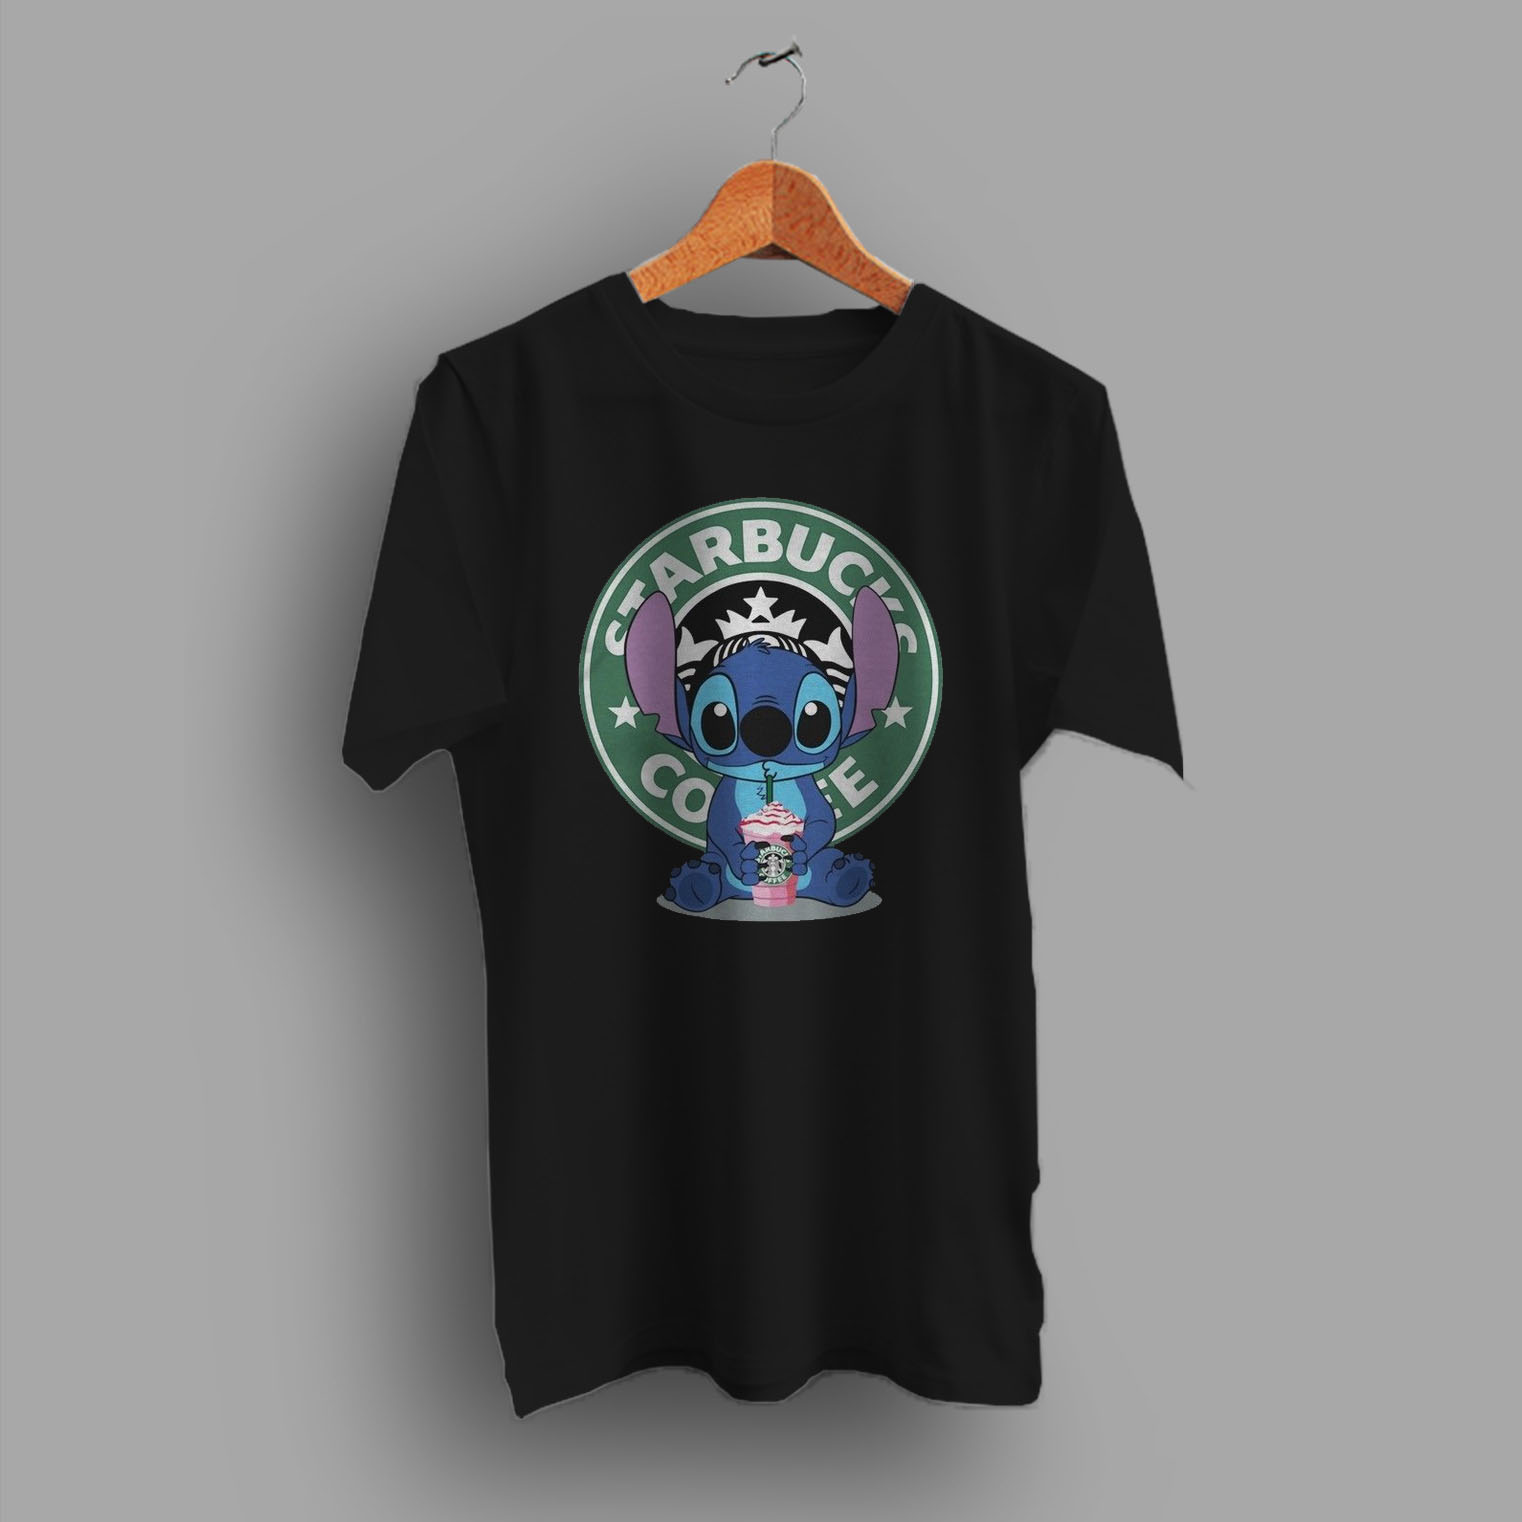 520a0bc75 Lilo Stitch Starbucks Coffee Funny T Shirt Inspired - Hotvero